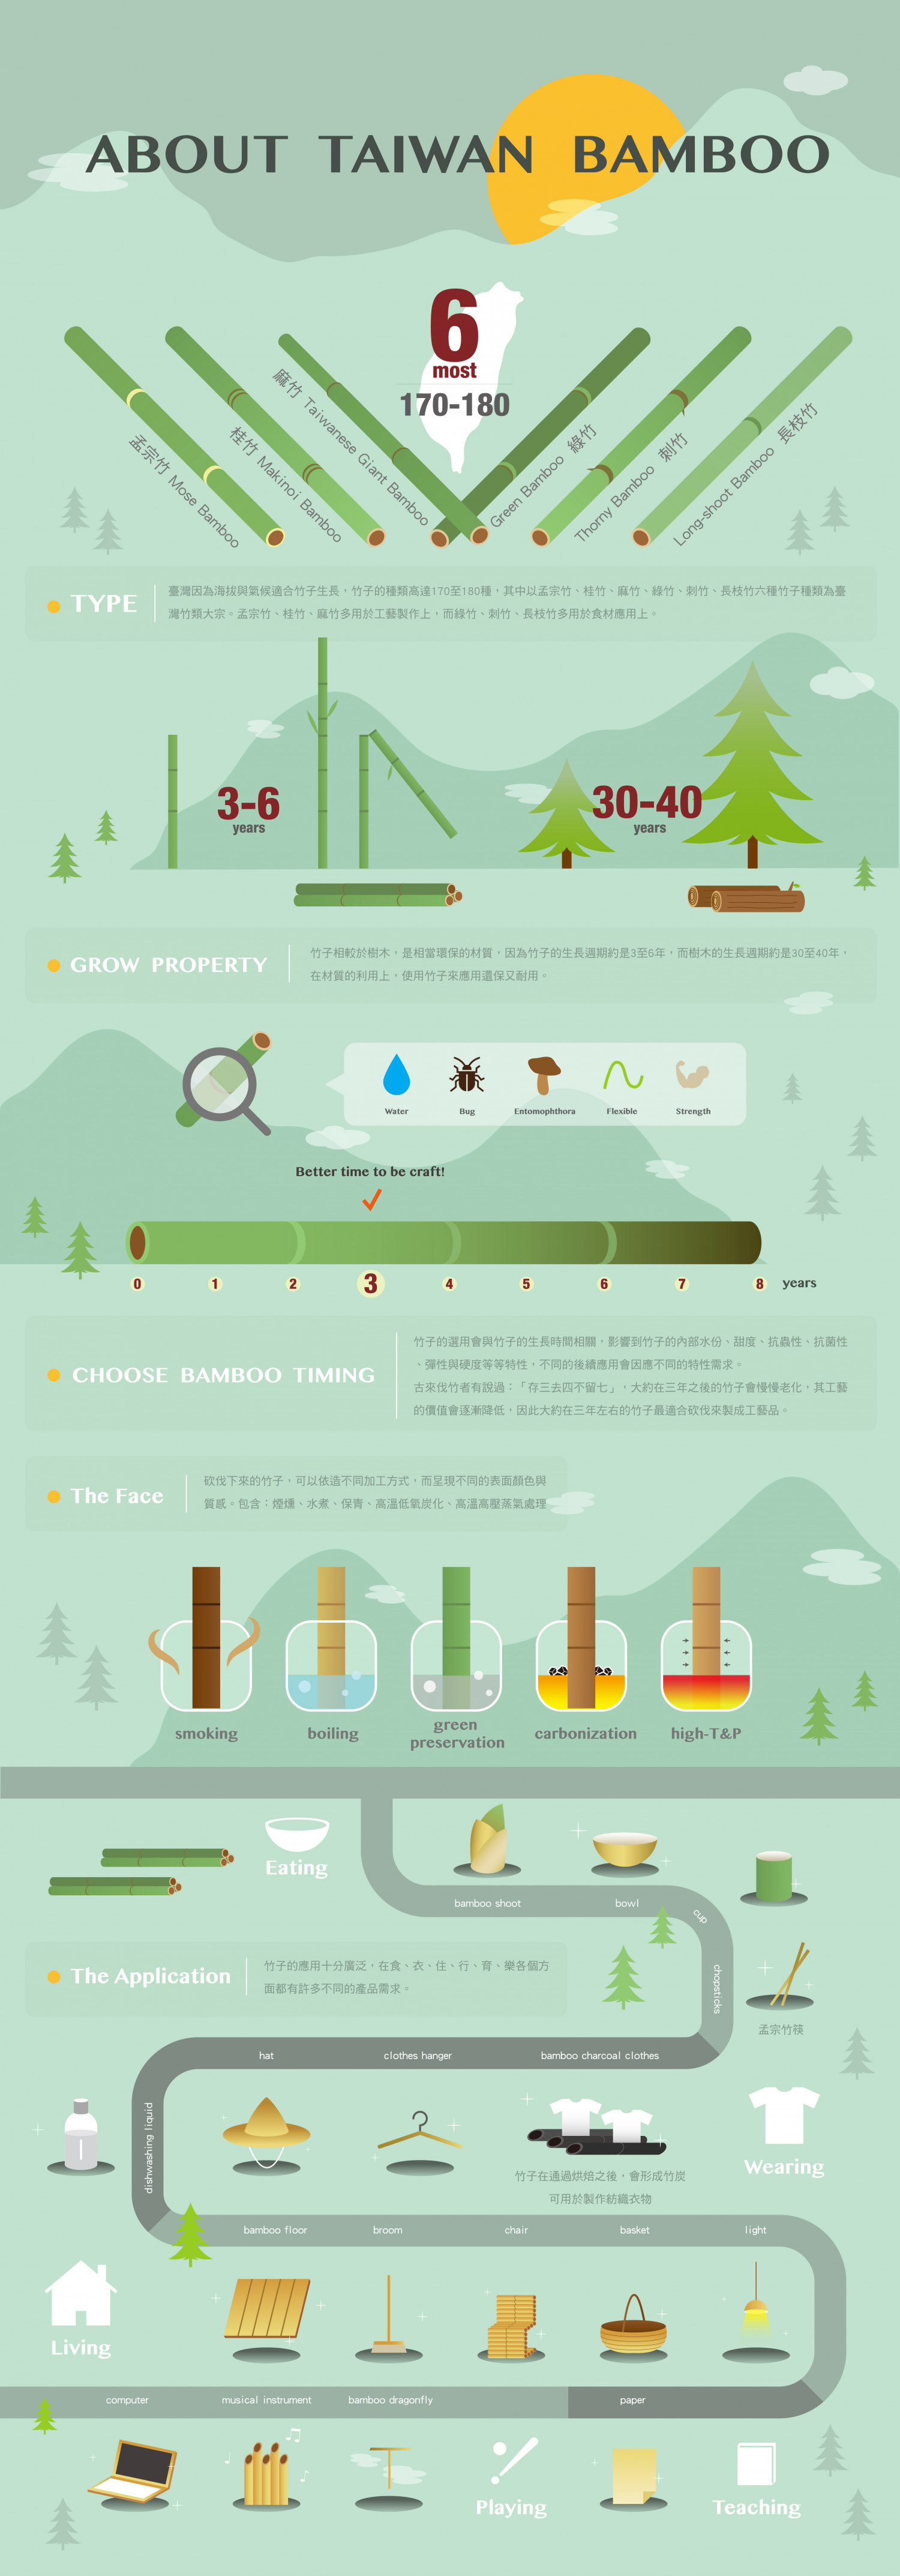 About Taiwan Bamboo Infographic